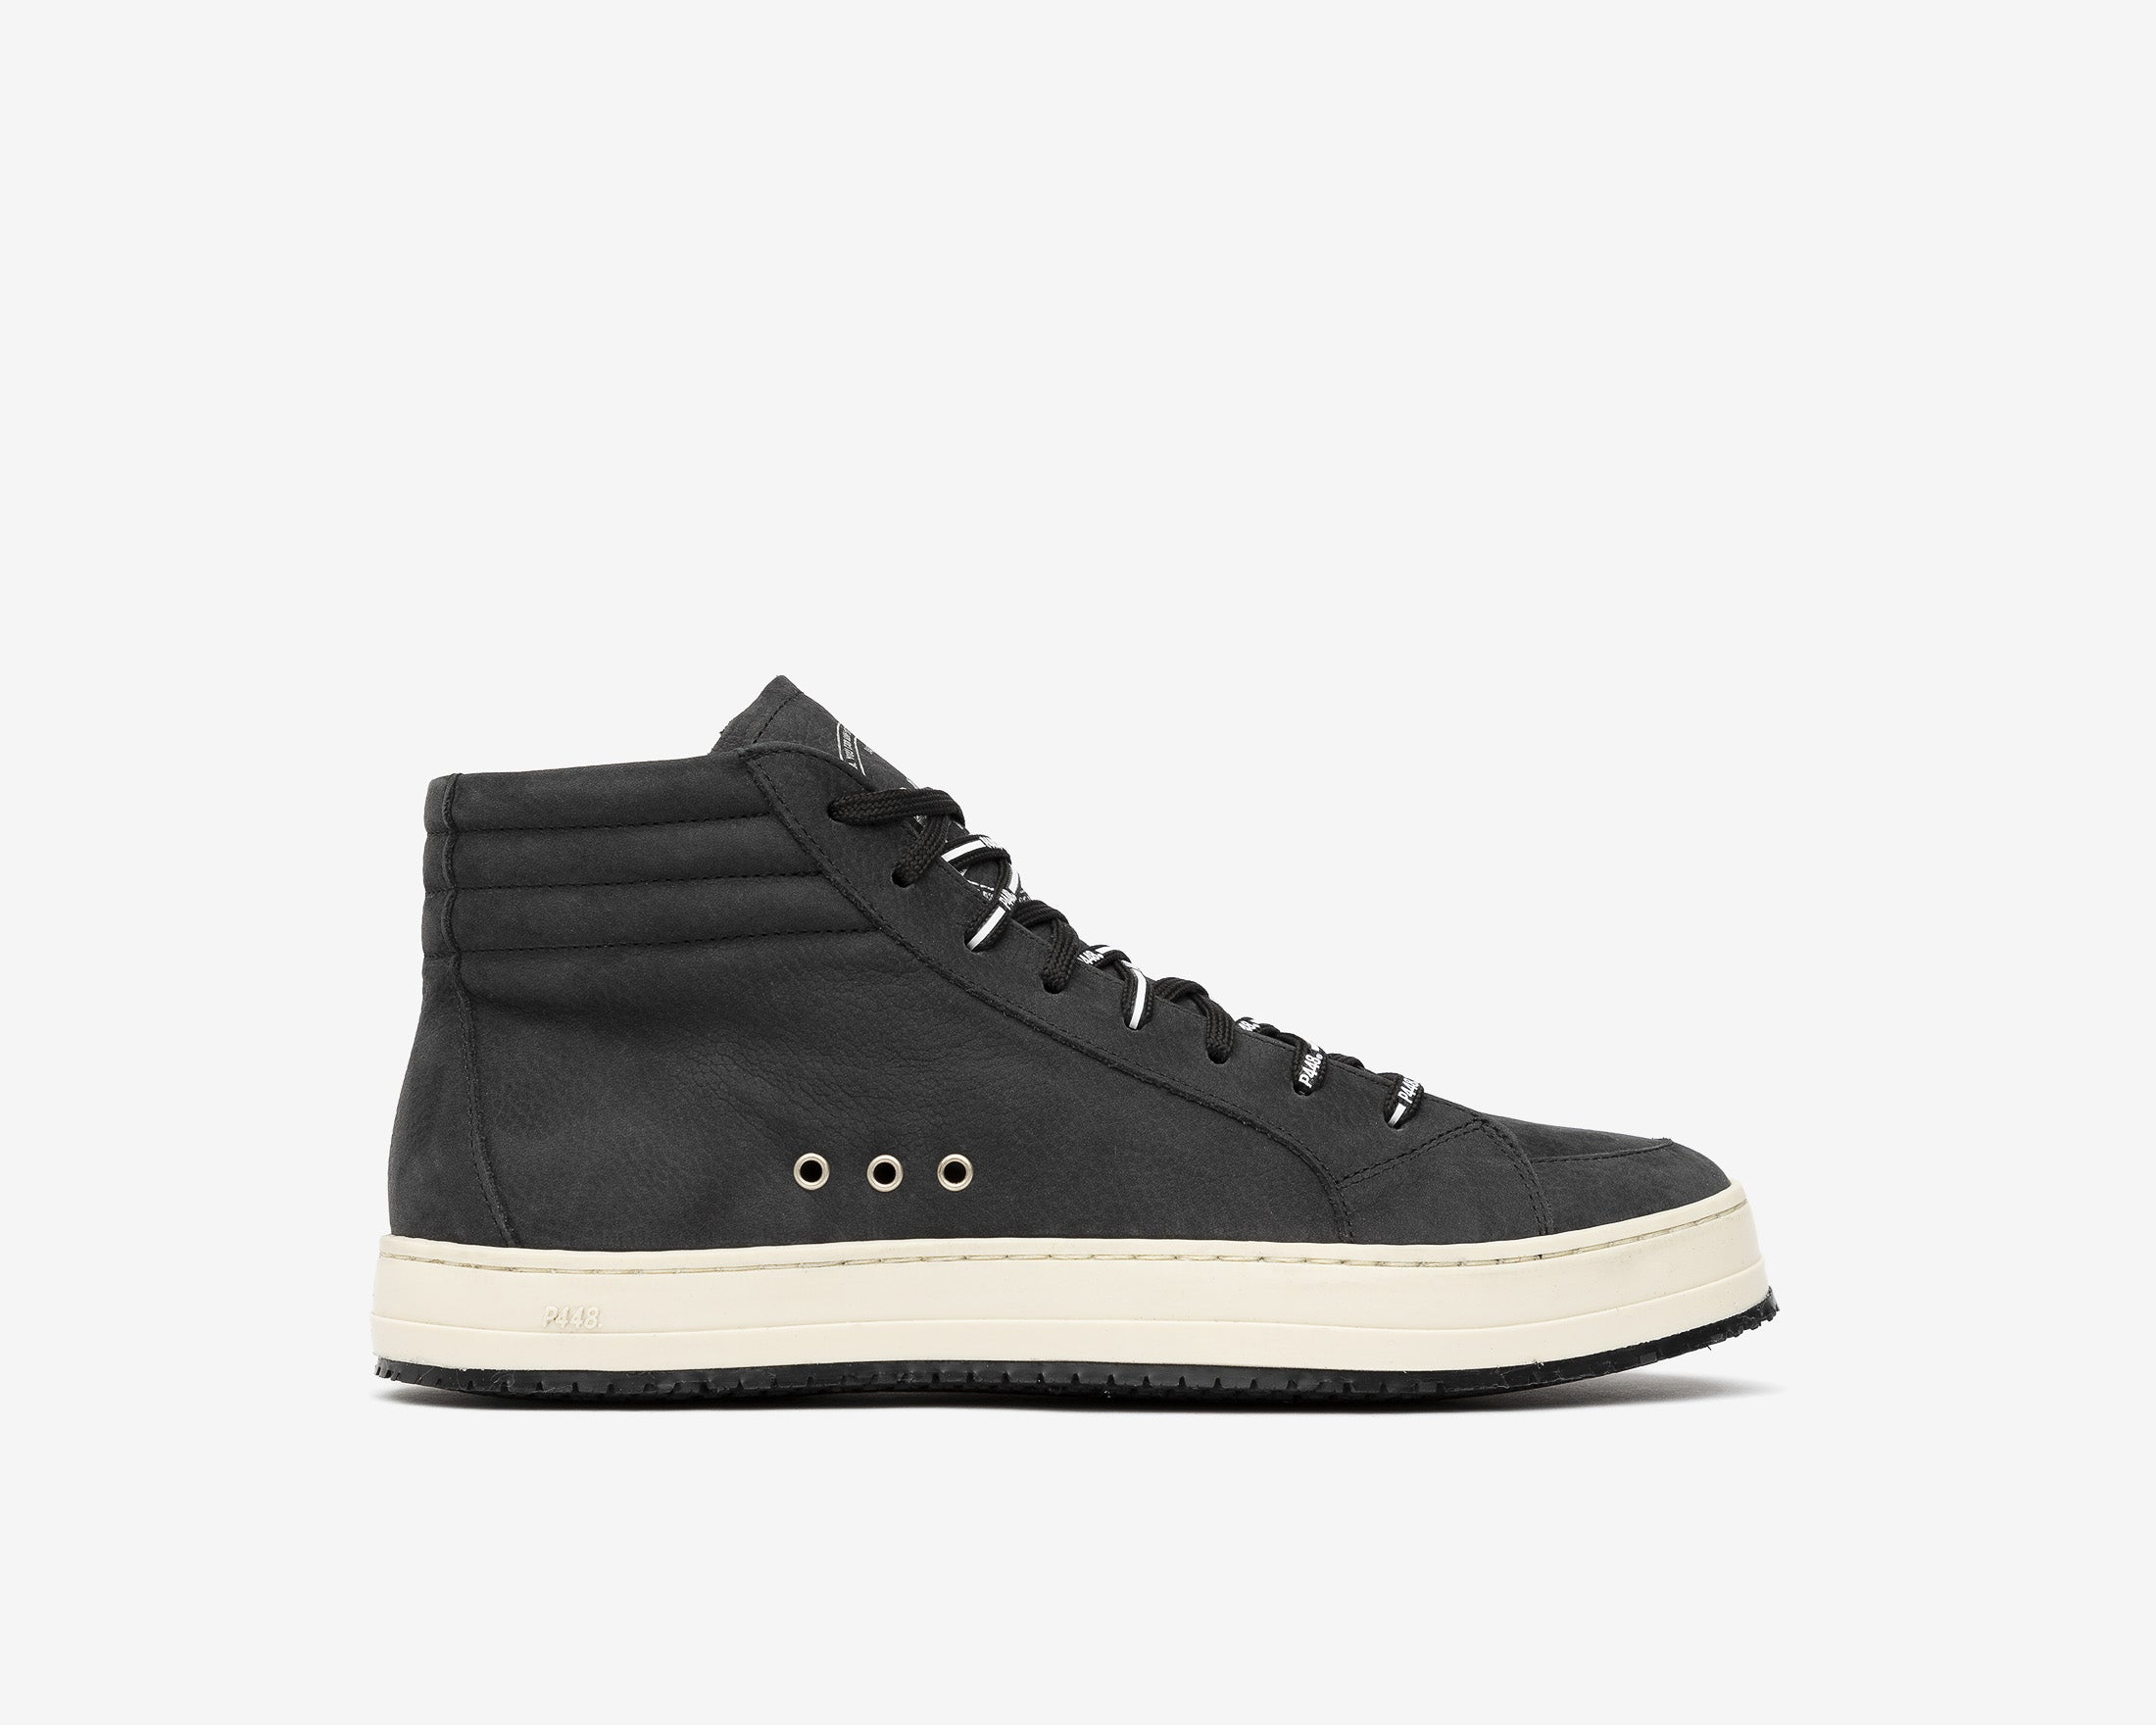 Skate High-Top Sneaker in Luxor - Profile